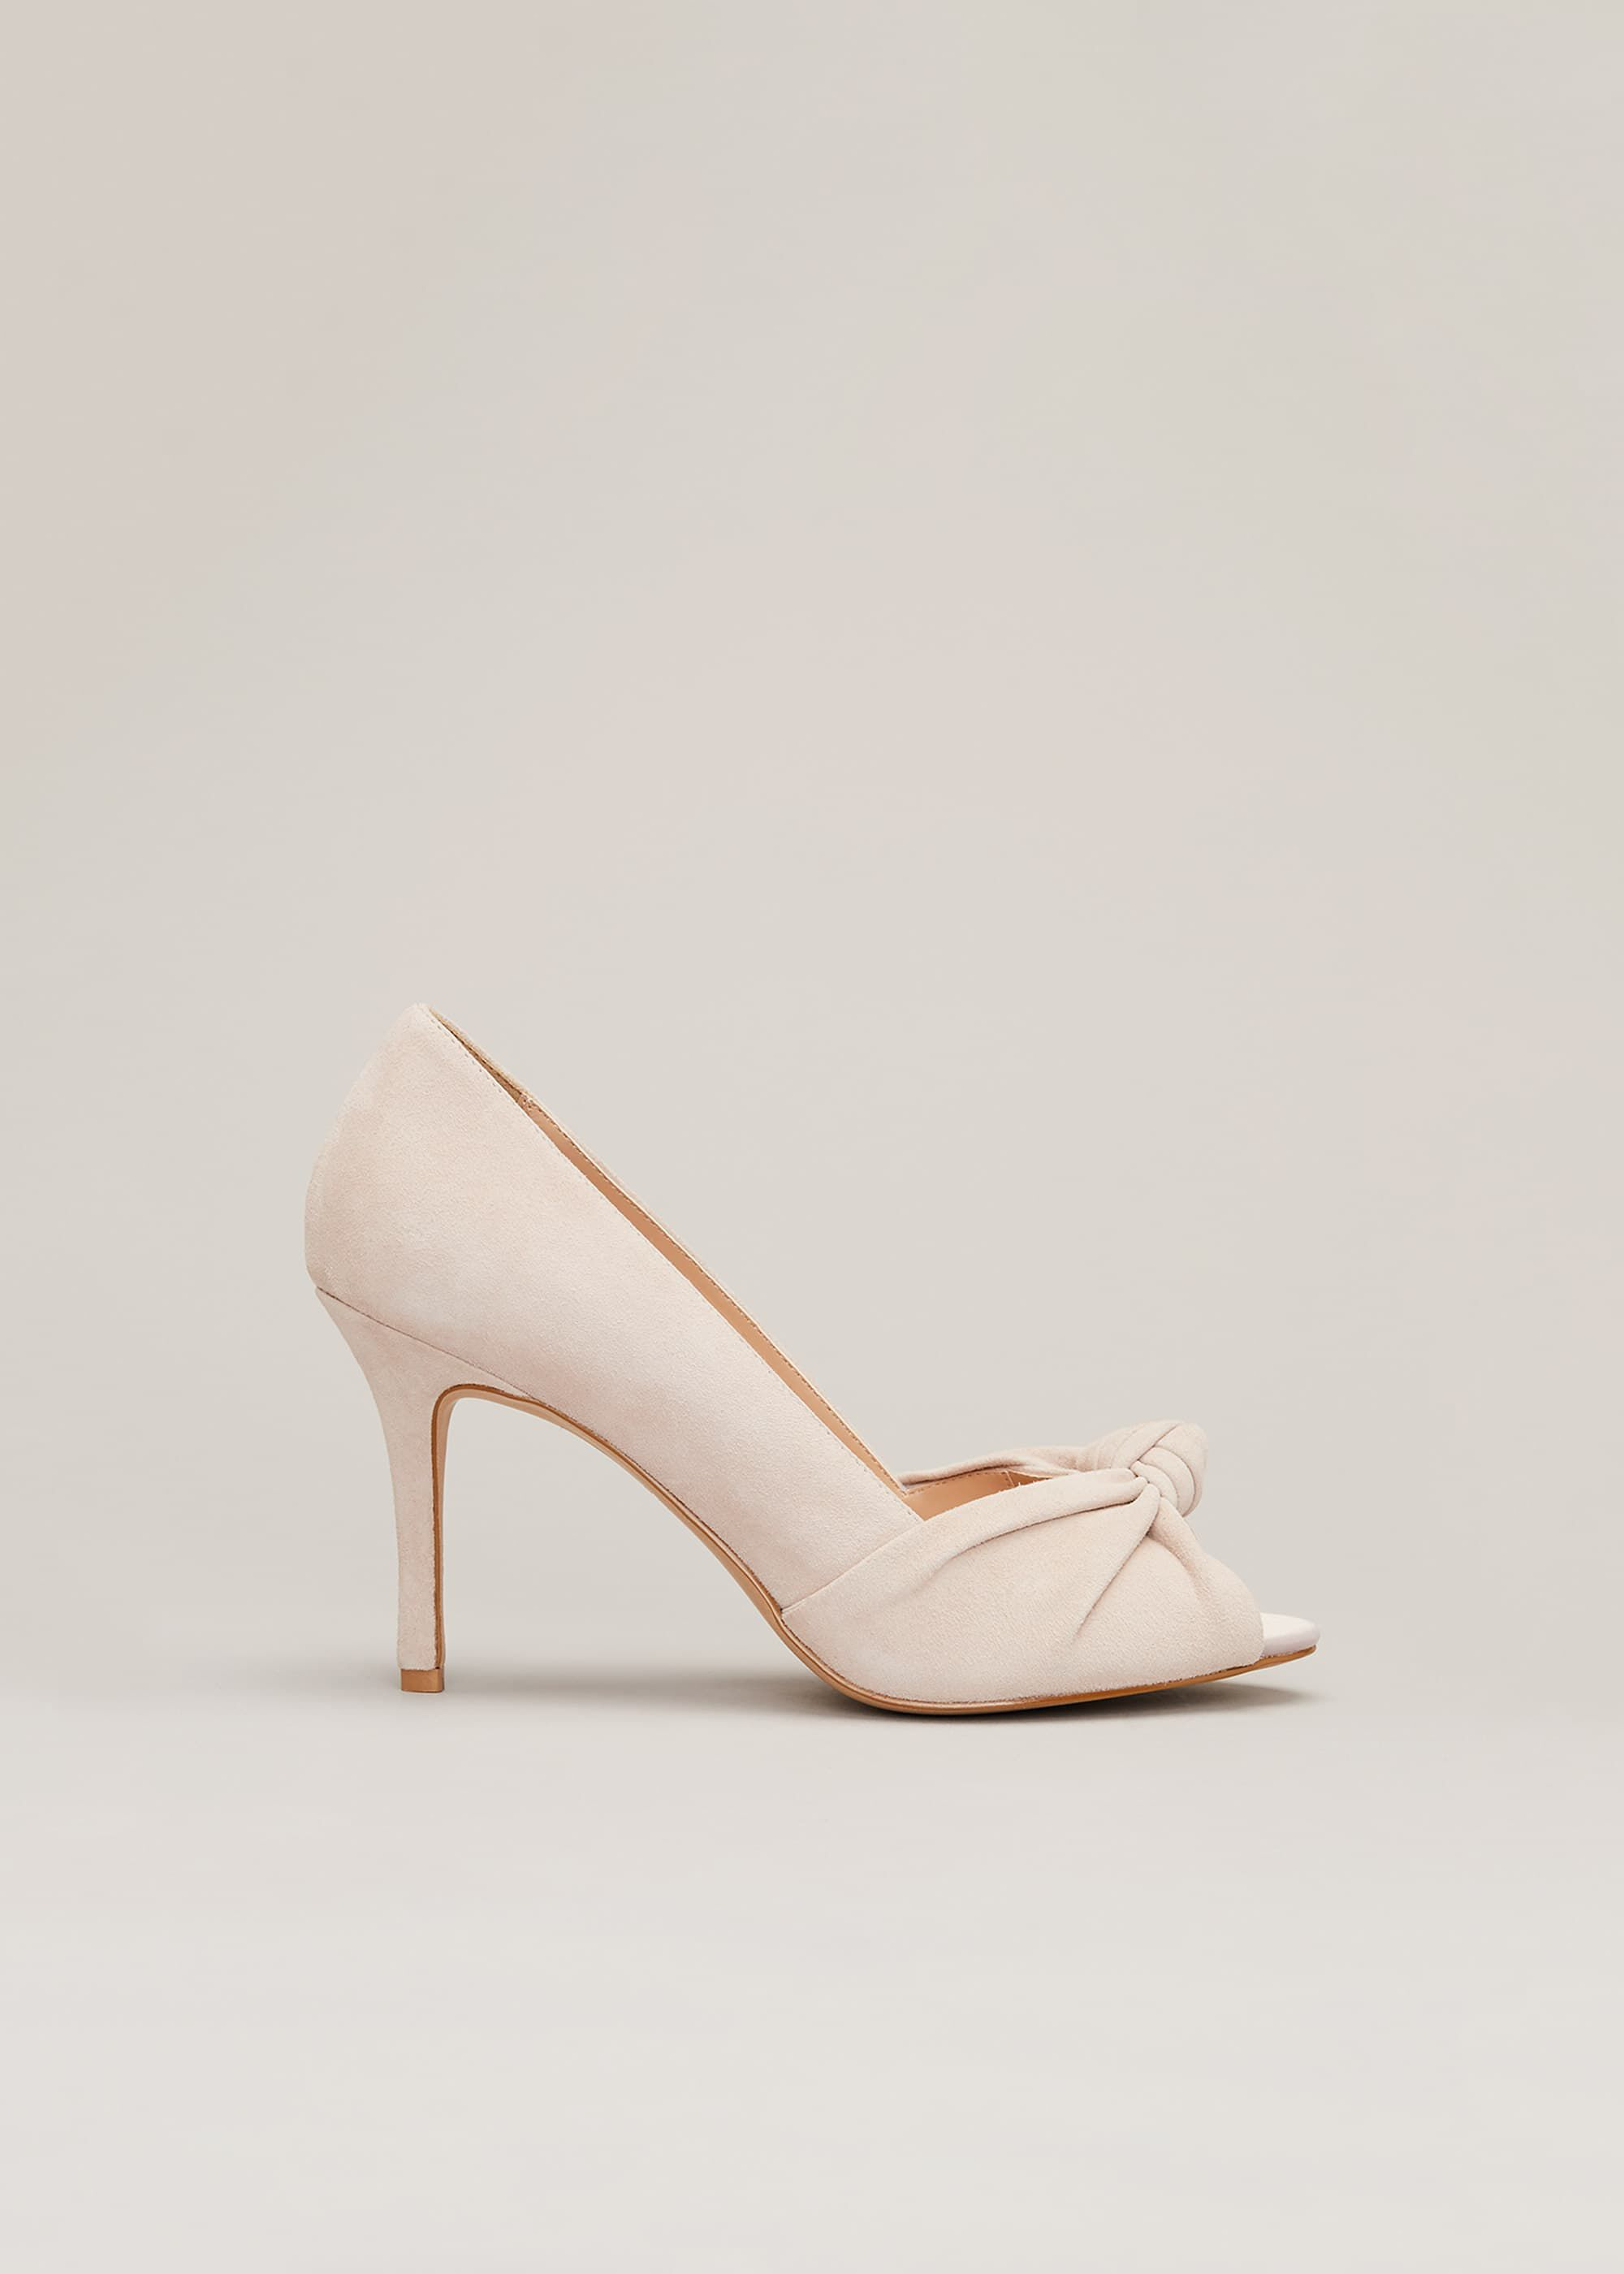 Phase Eight Sonja Suede Peep Toe Shoe, Neutral, High Heels